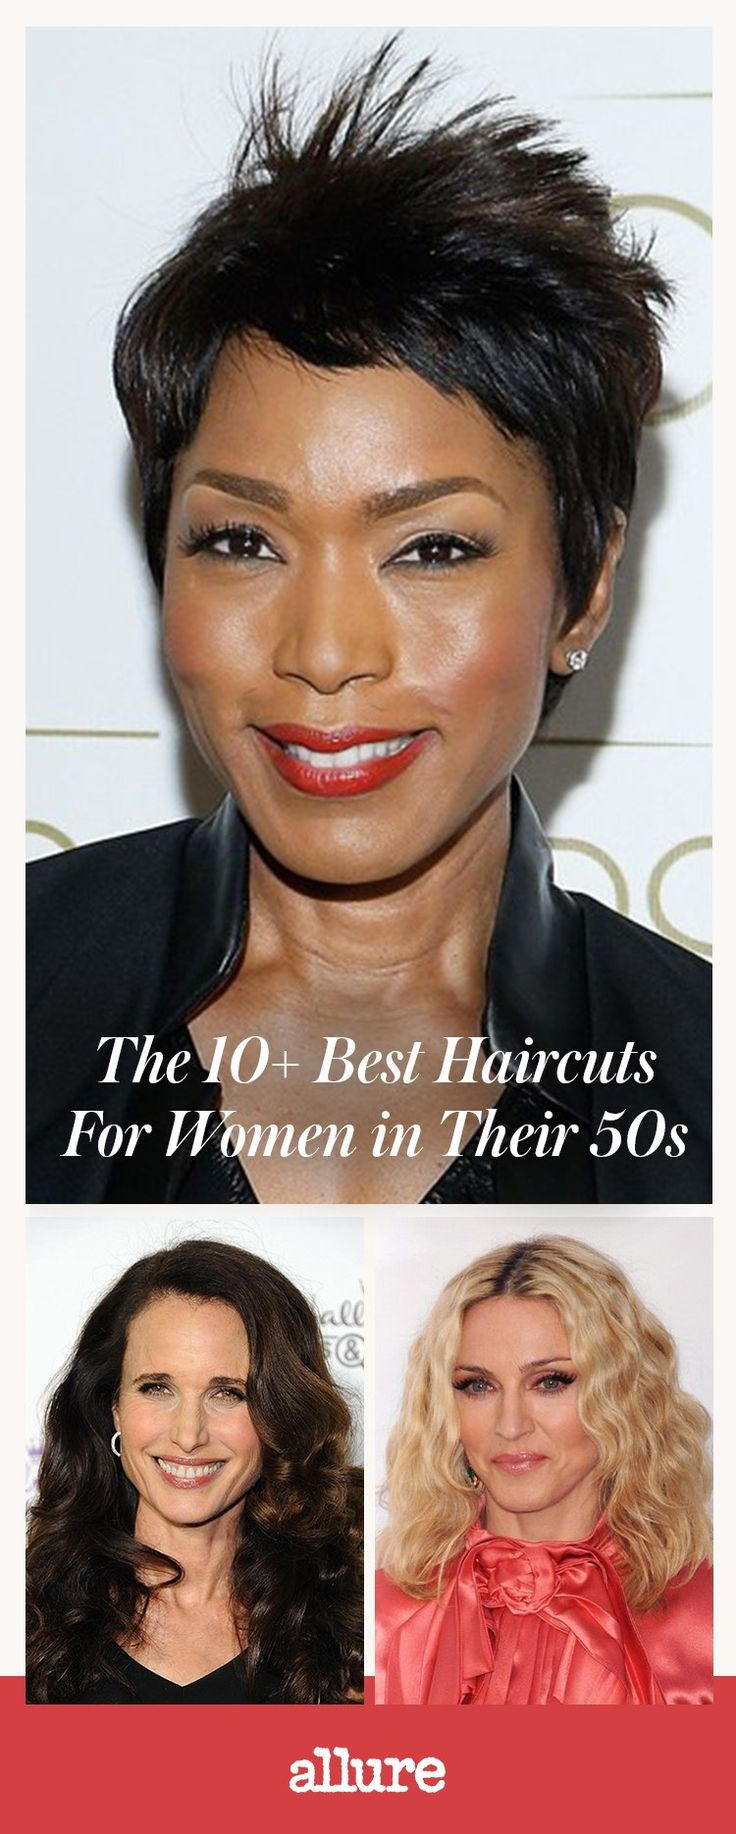 The 10 Best Haircuts for Women in Their 50s - Short and Long Haircuts for Women | Allure